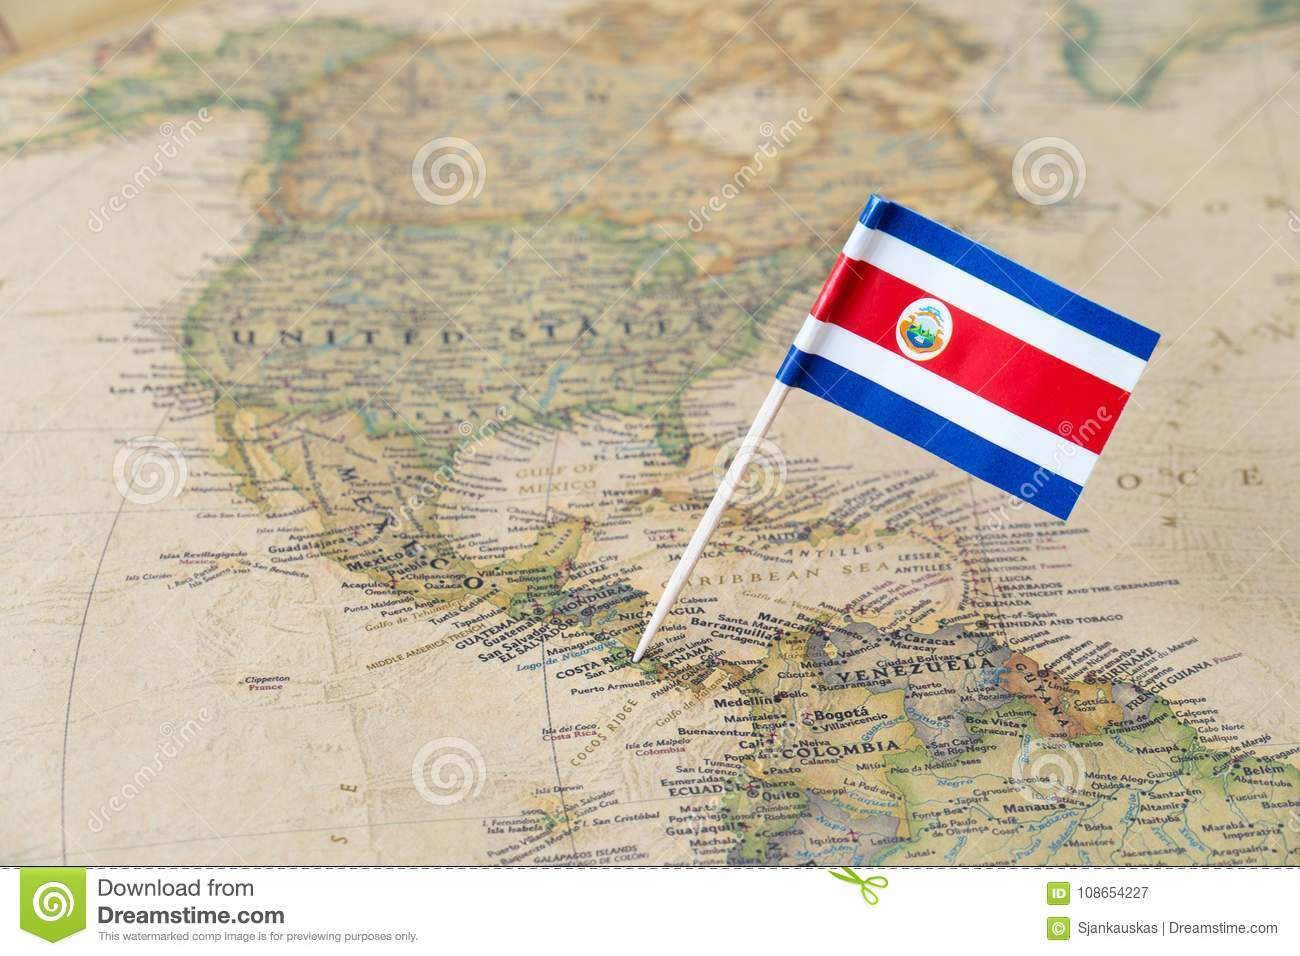 Costa Rica Flag Pin On World Map Stock Image - Image of countries ...